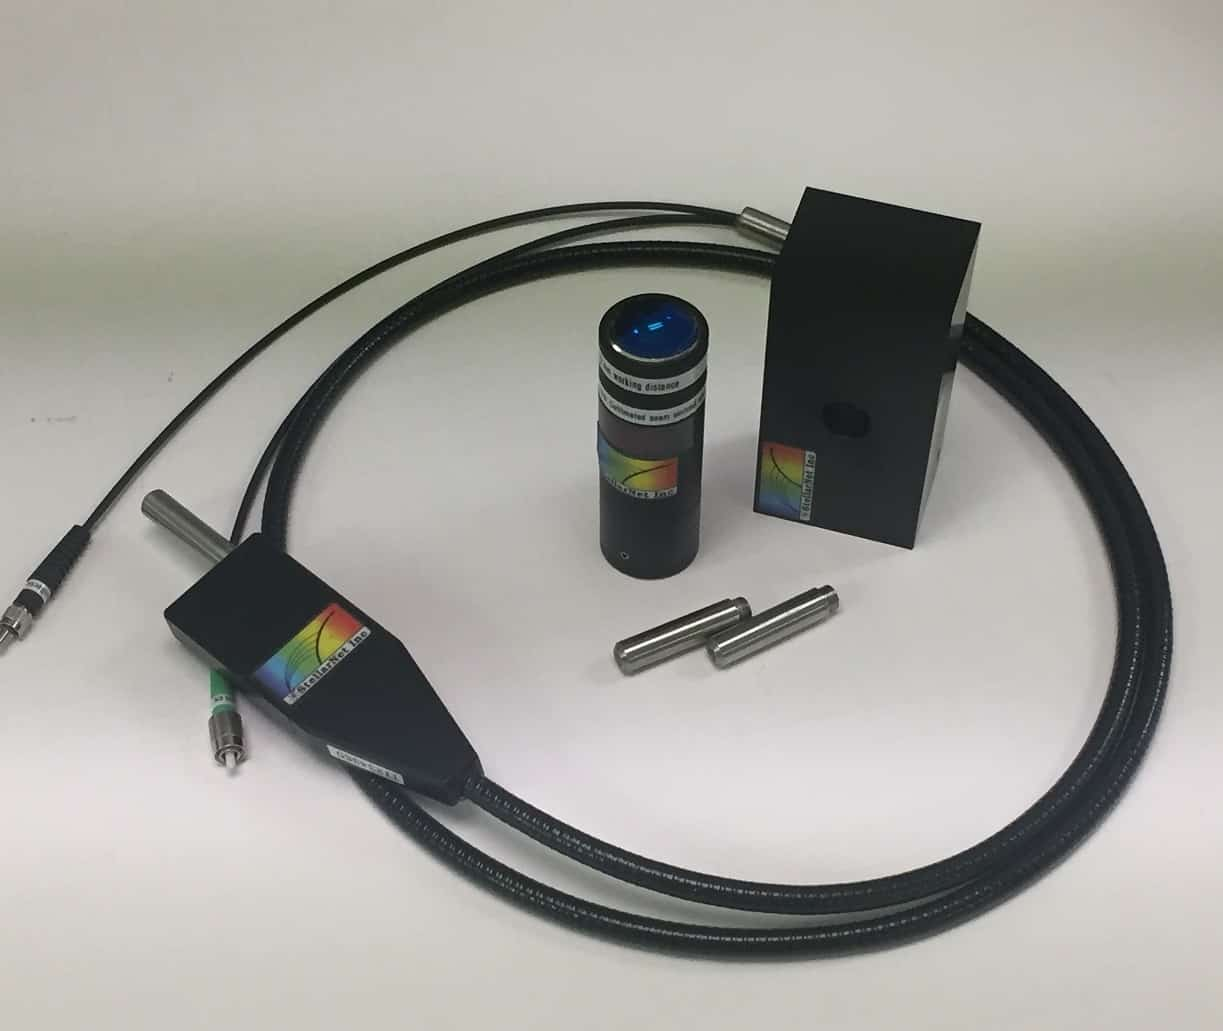 Raman-Probe-and-Accessories.jpg